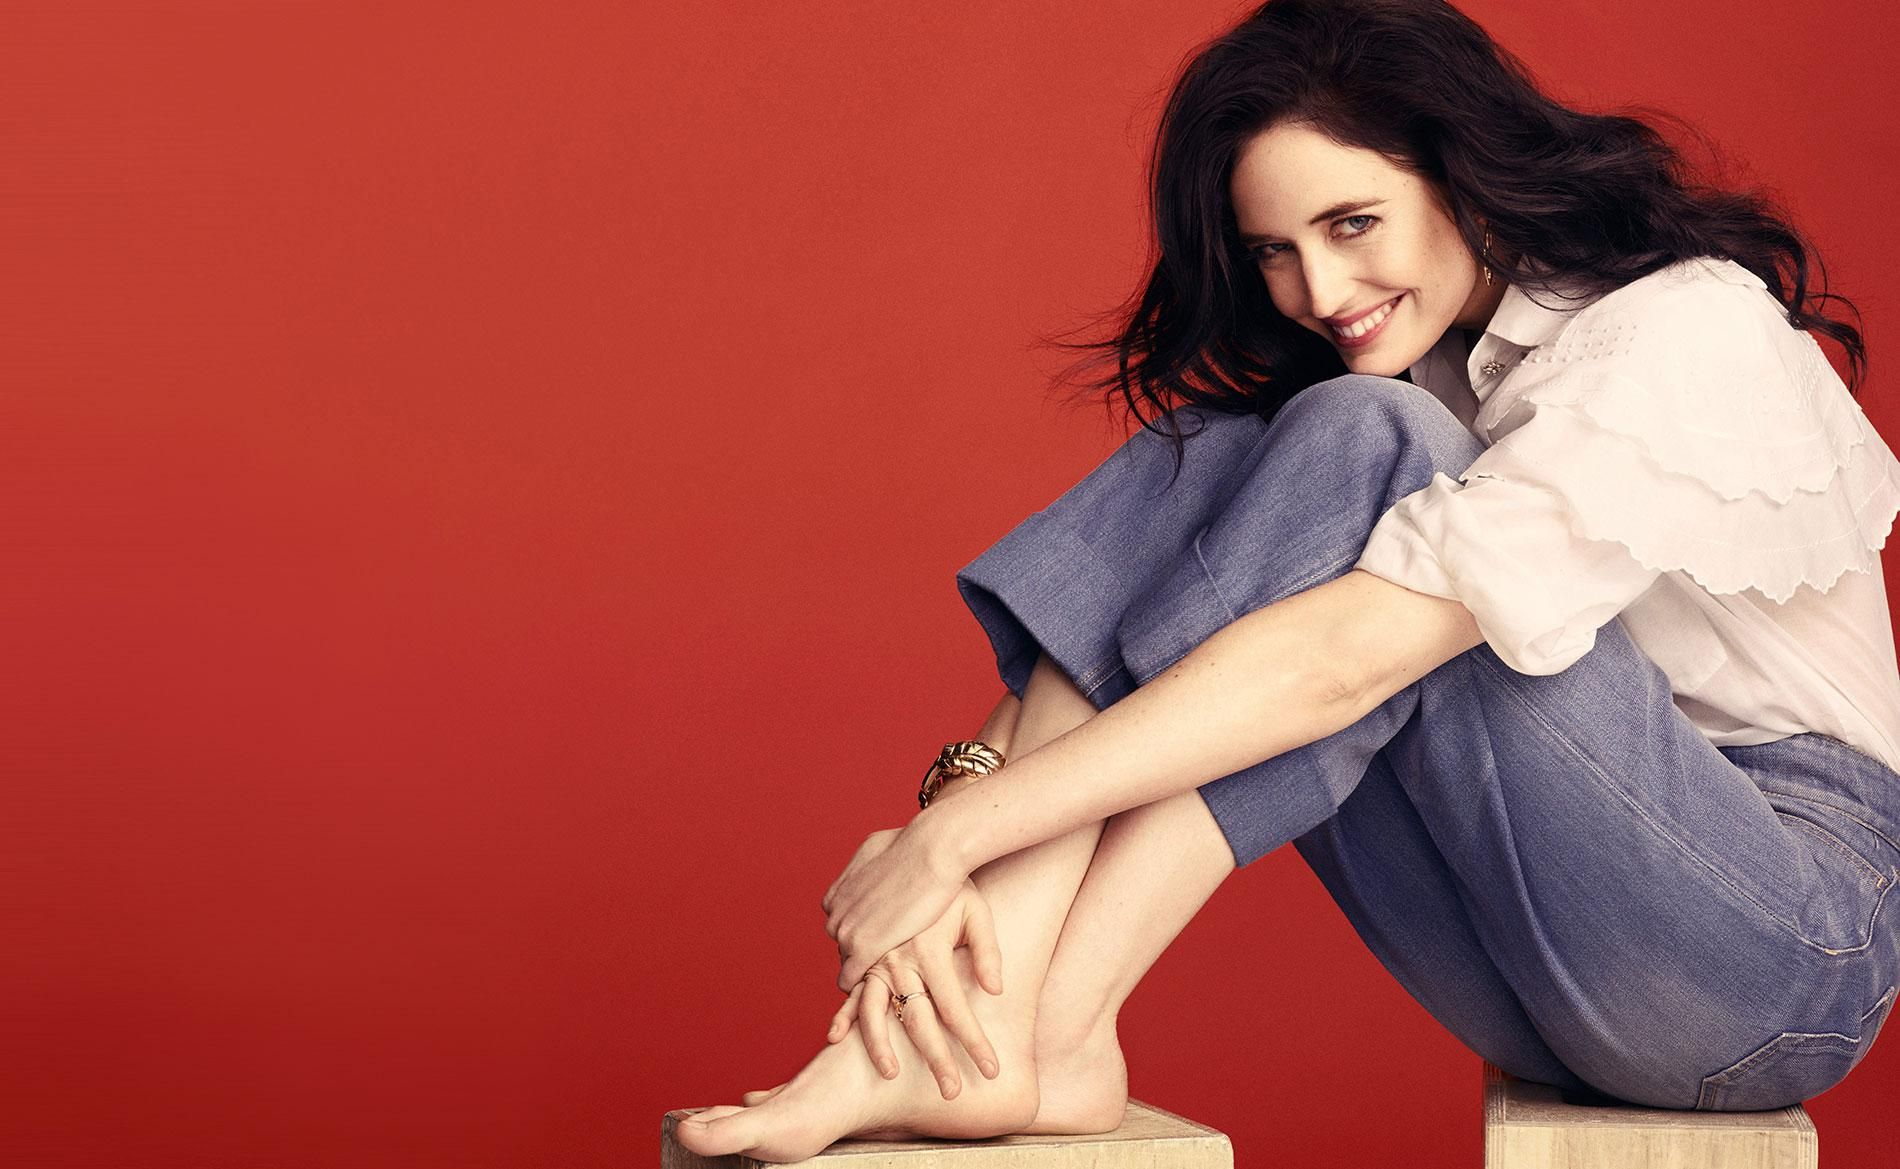 eva green sistereva green sister, eva green wiki, eva green films, eva green 2016, eva green wallpaper, eva green sin city, eva green 2017, eva green penny dreadful, eva green interview, eva green инстаграм, eva green imdb, eva green web, eva green style, eva green фото, eva green twitter, eva green png, eva green insta, eva green sister twin, eva green fan site, eva green campari